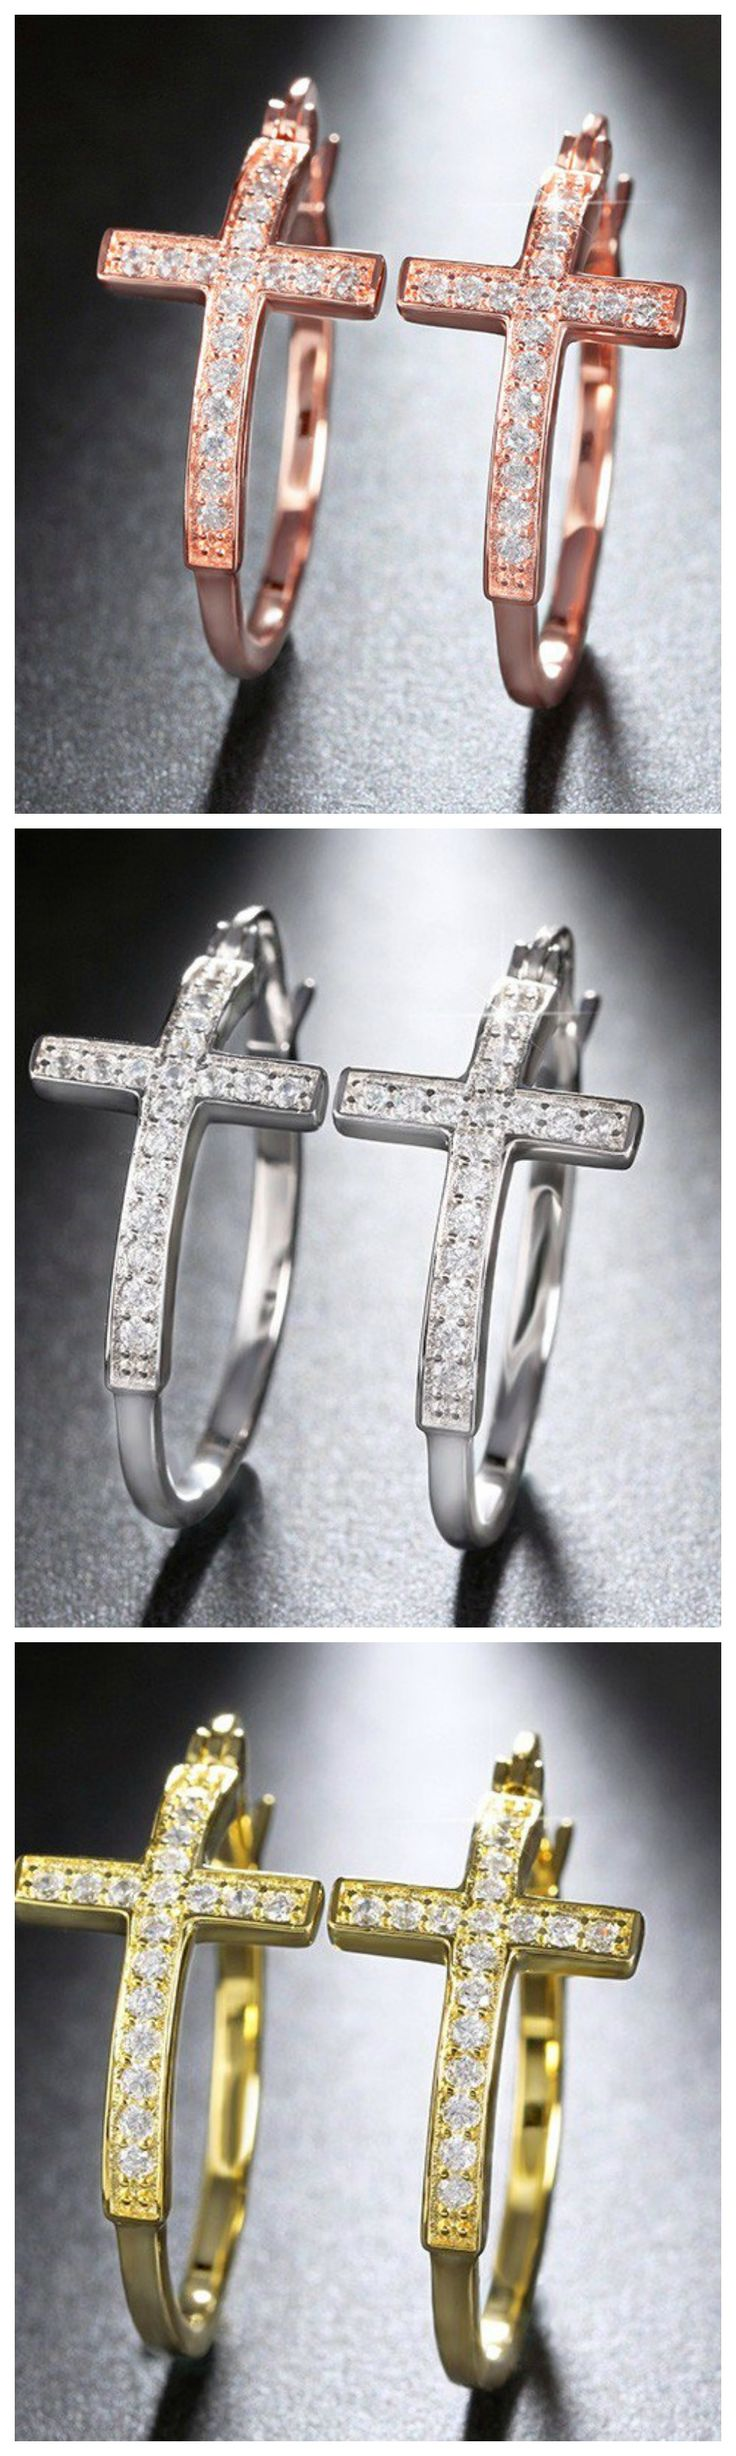 Get these Ziphlets cross earrings. Use the code BY310SALE to get 10% off.